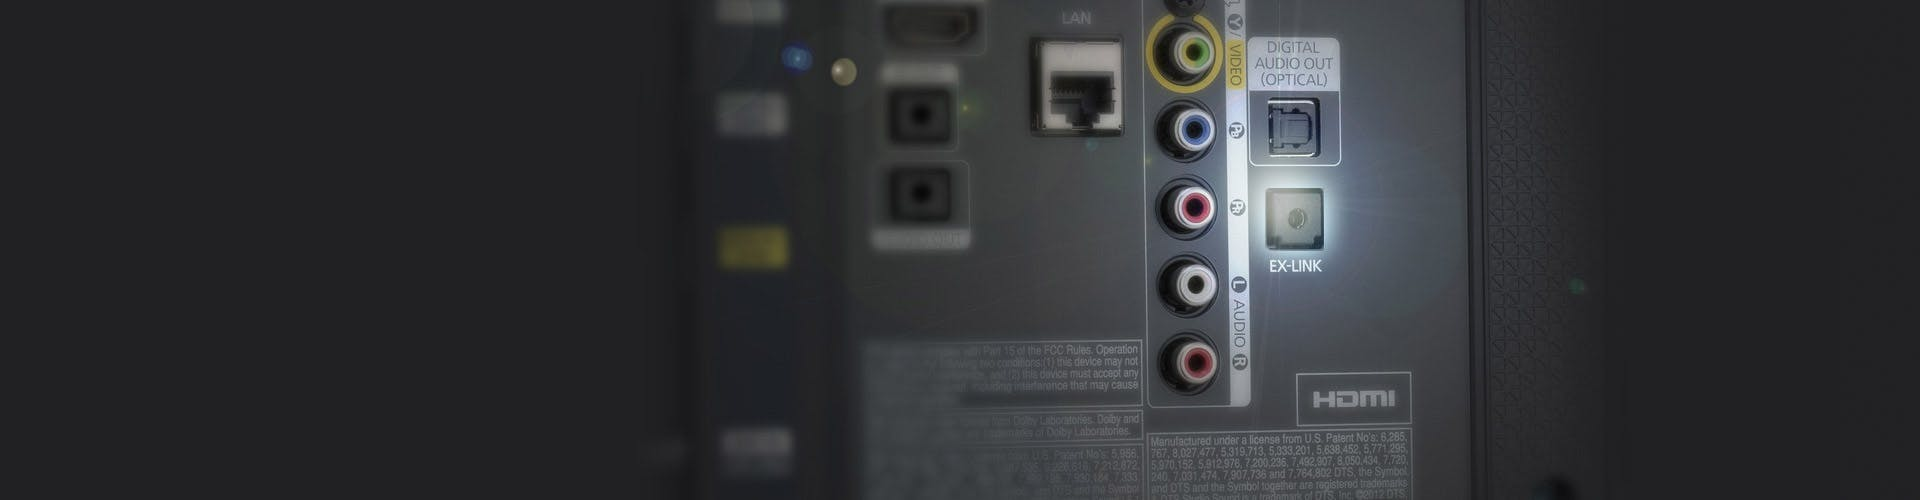 Almo's Samsung Smart TV RS-232 User Guide